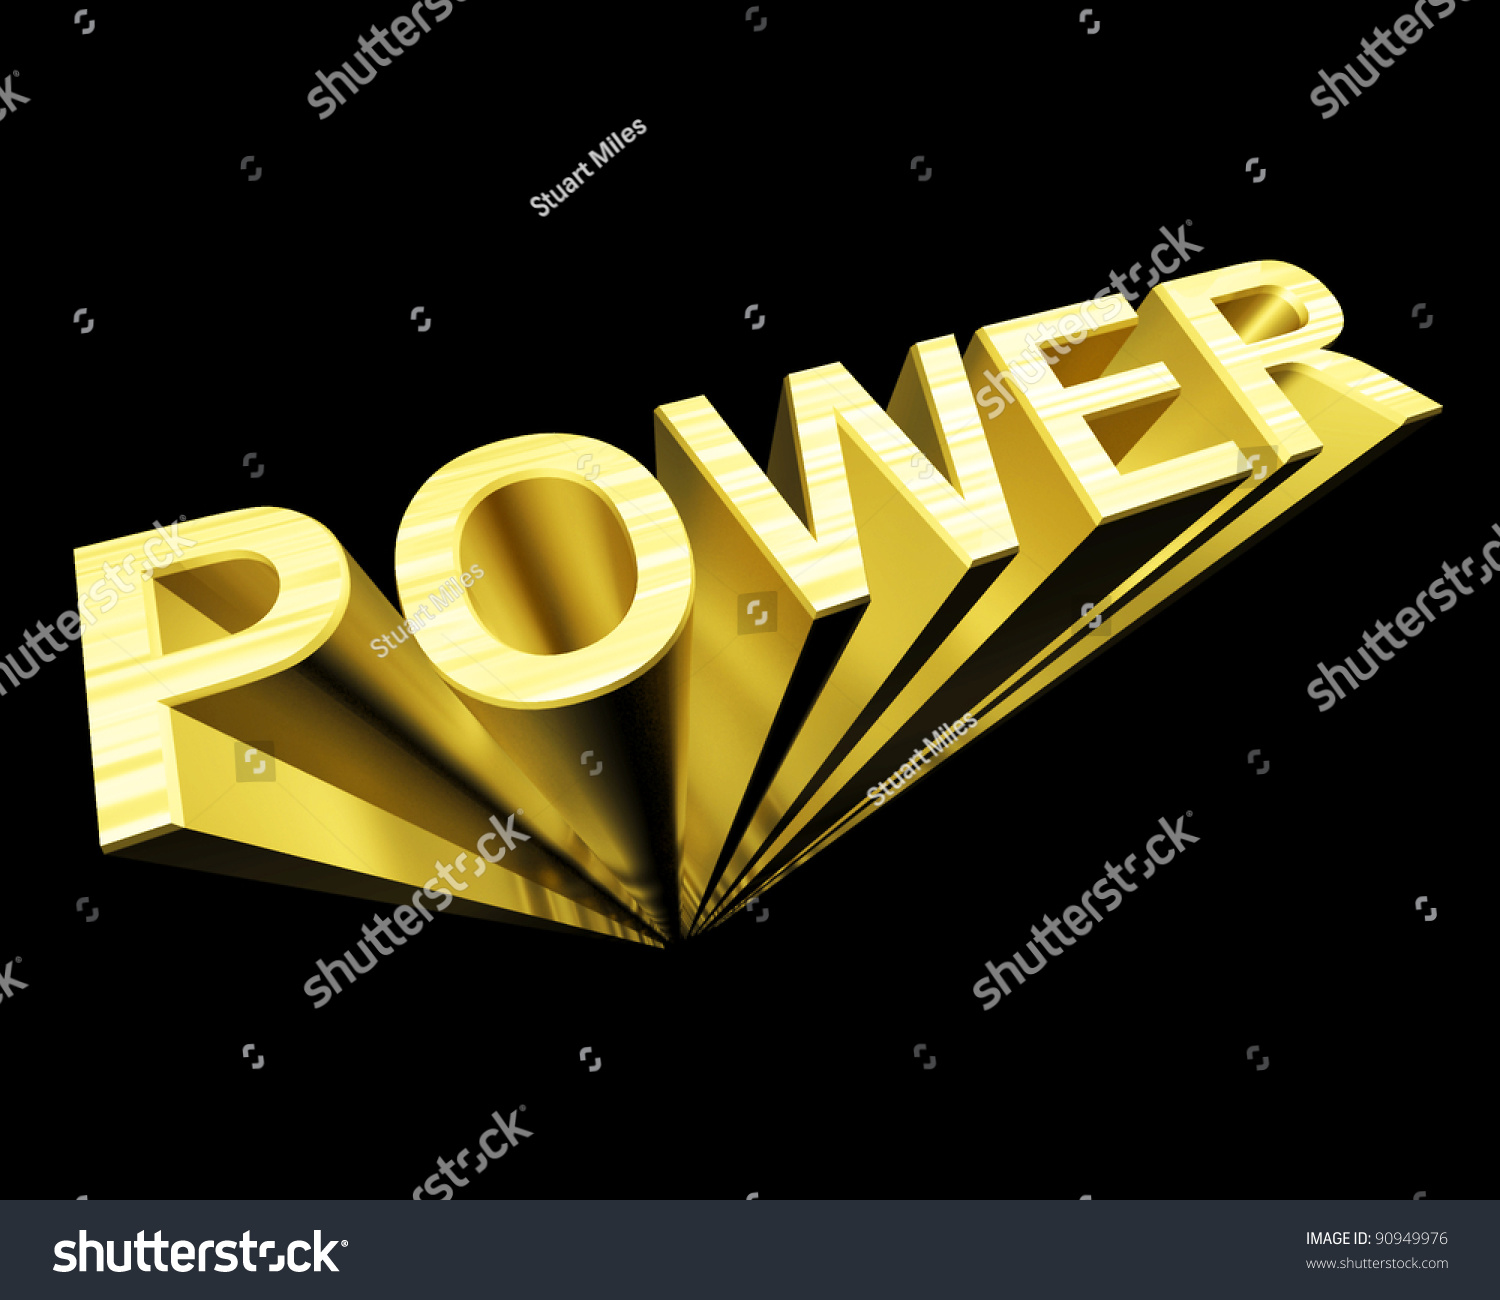 Power 3d text gold symbol energy stock illustration 90949976 power 3d text in gold and as symbol for energy and industry biocorpaavc Gallery